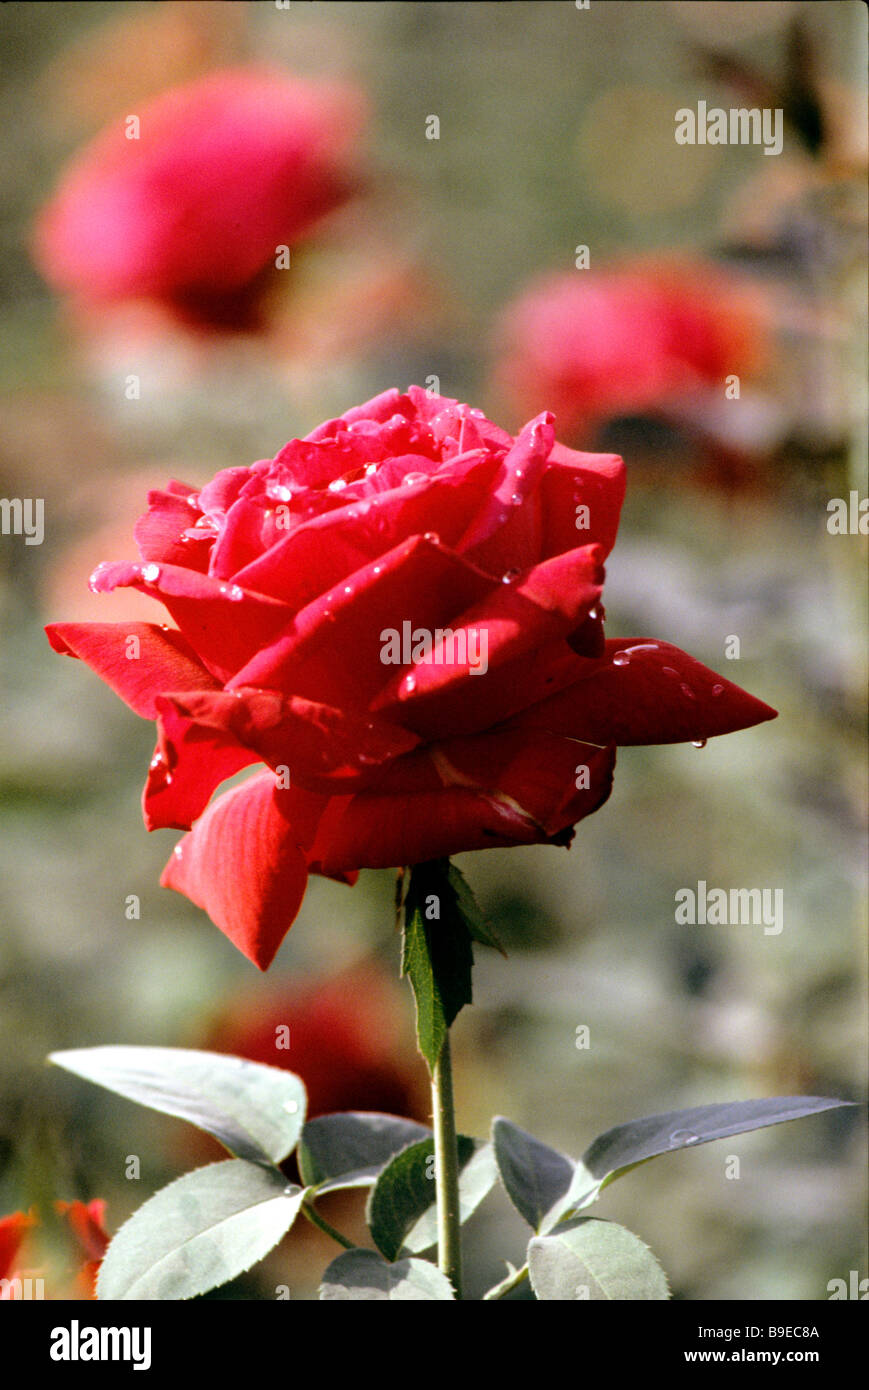 The Guldasta cooperative is round the year rose grower - Stock Image